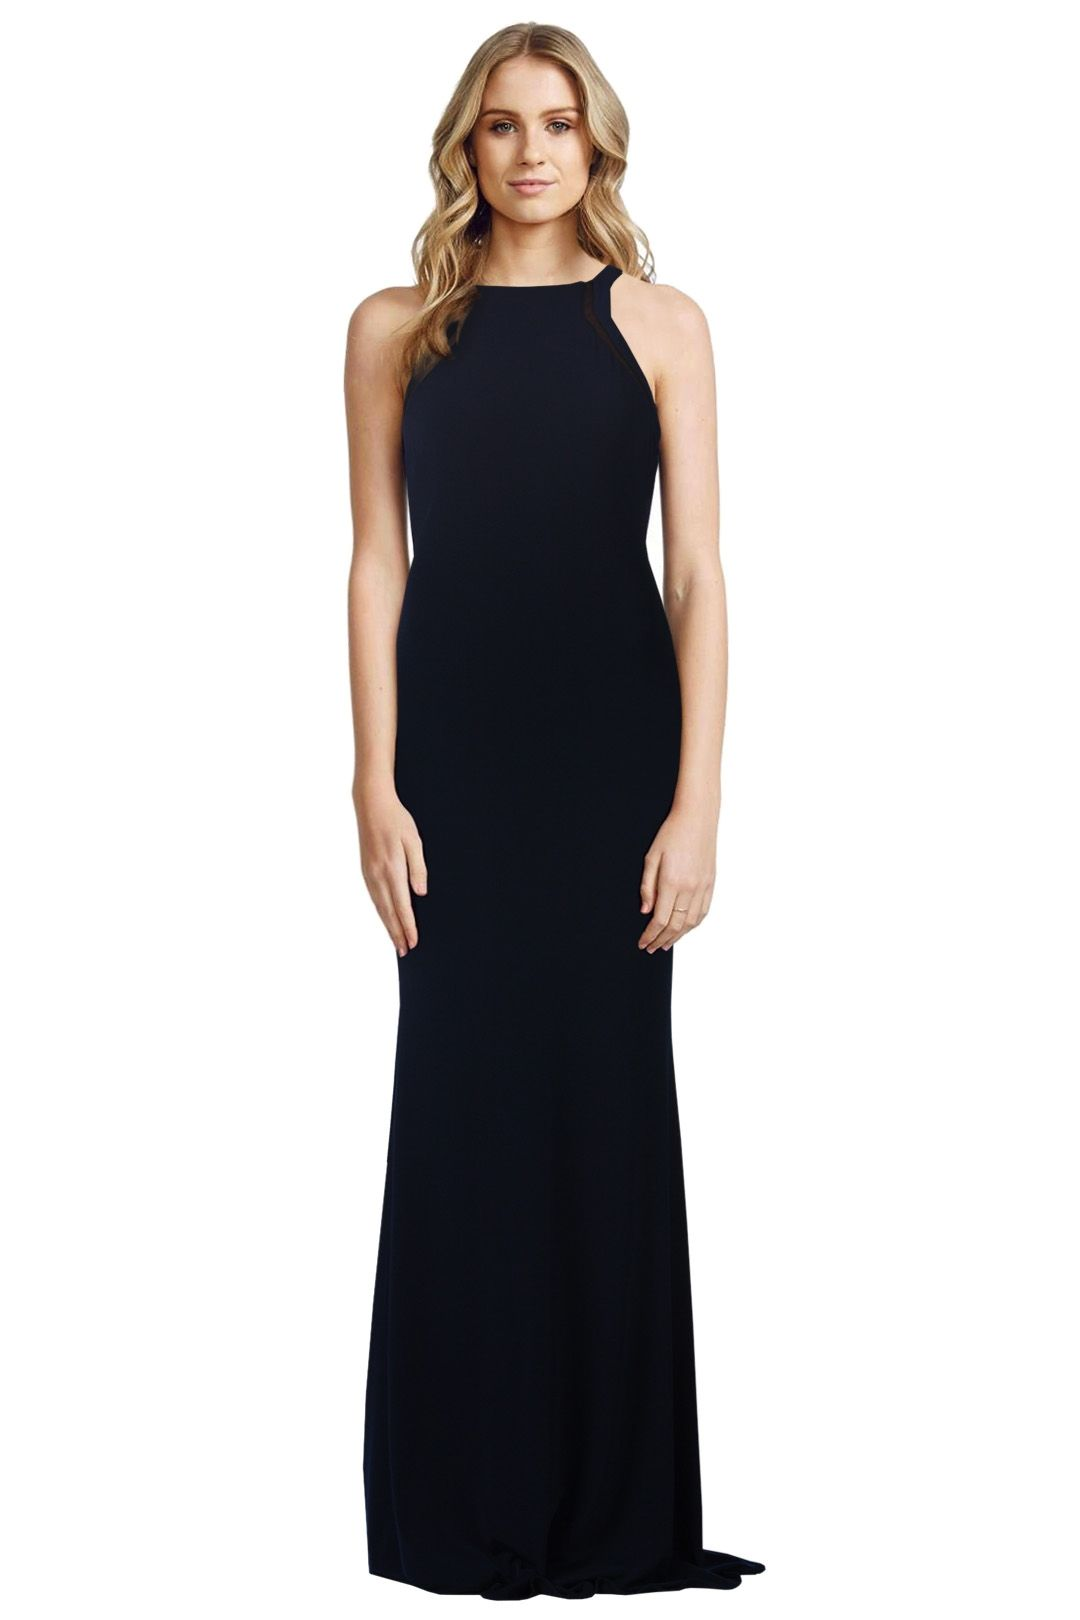 George - Athena Gown - Black - Front